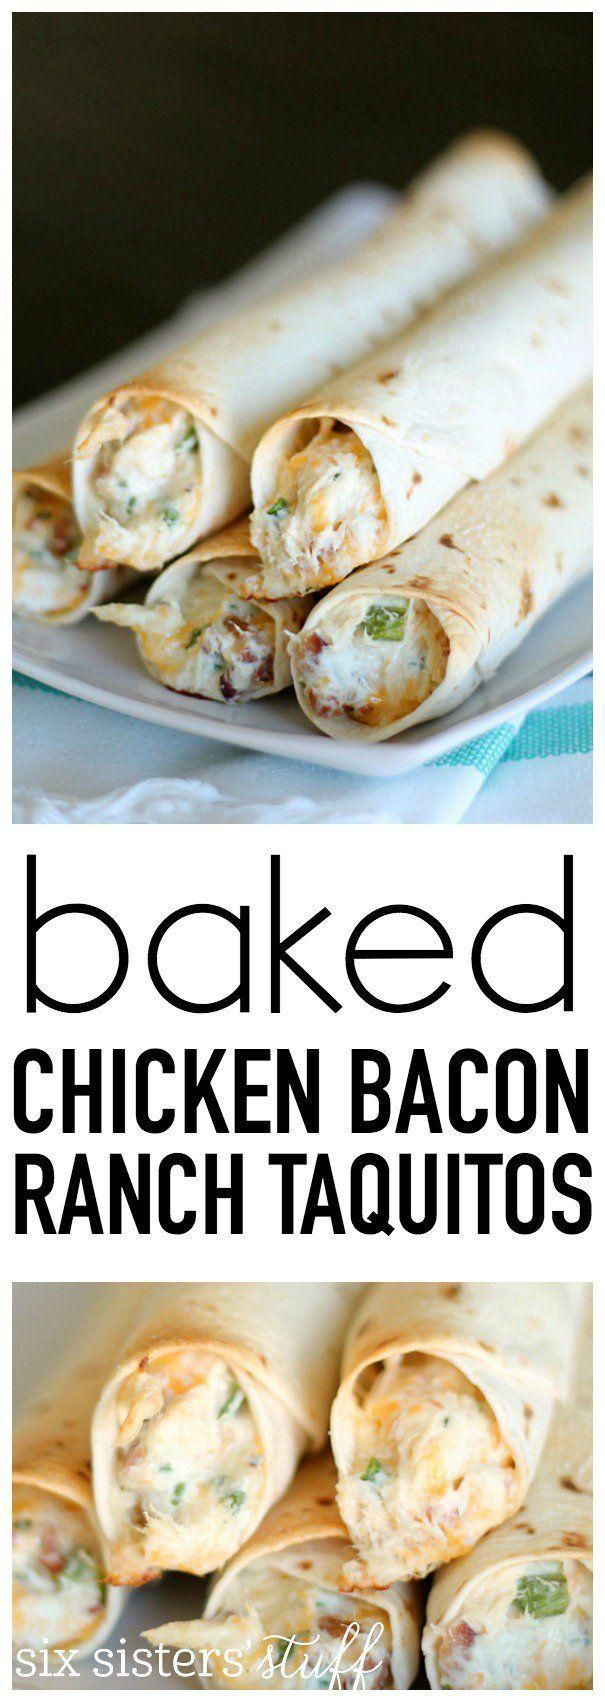 Baked Chicken Bacon Ranch Taquitos - *Yummy Chicken Recipes* -